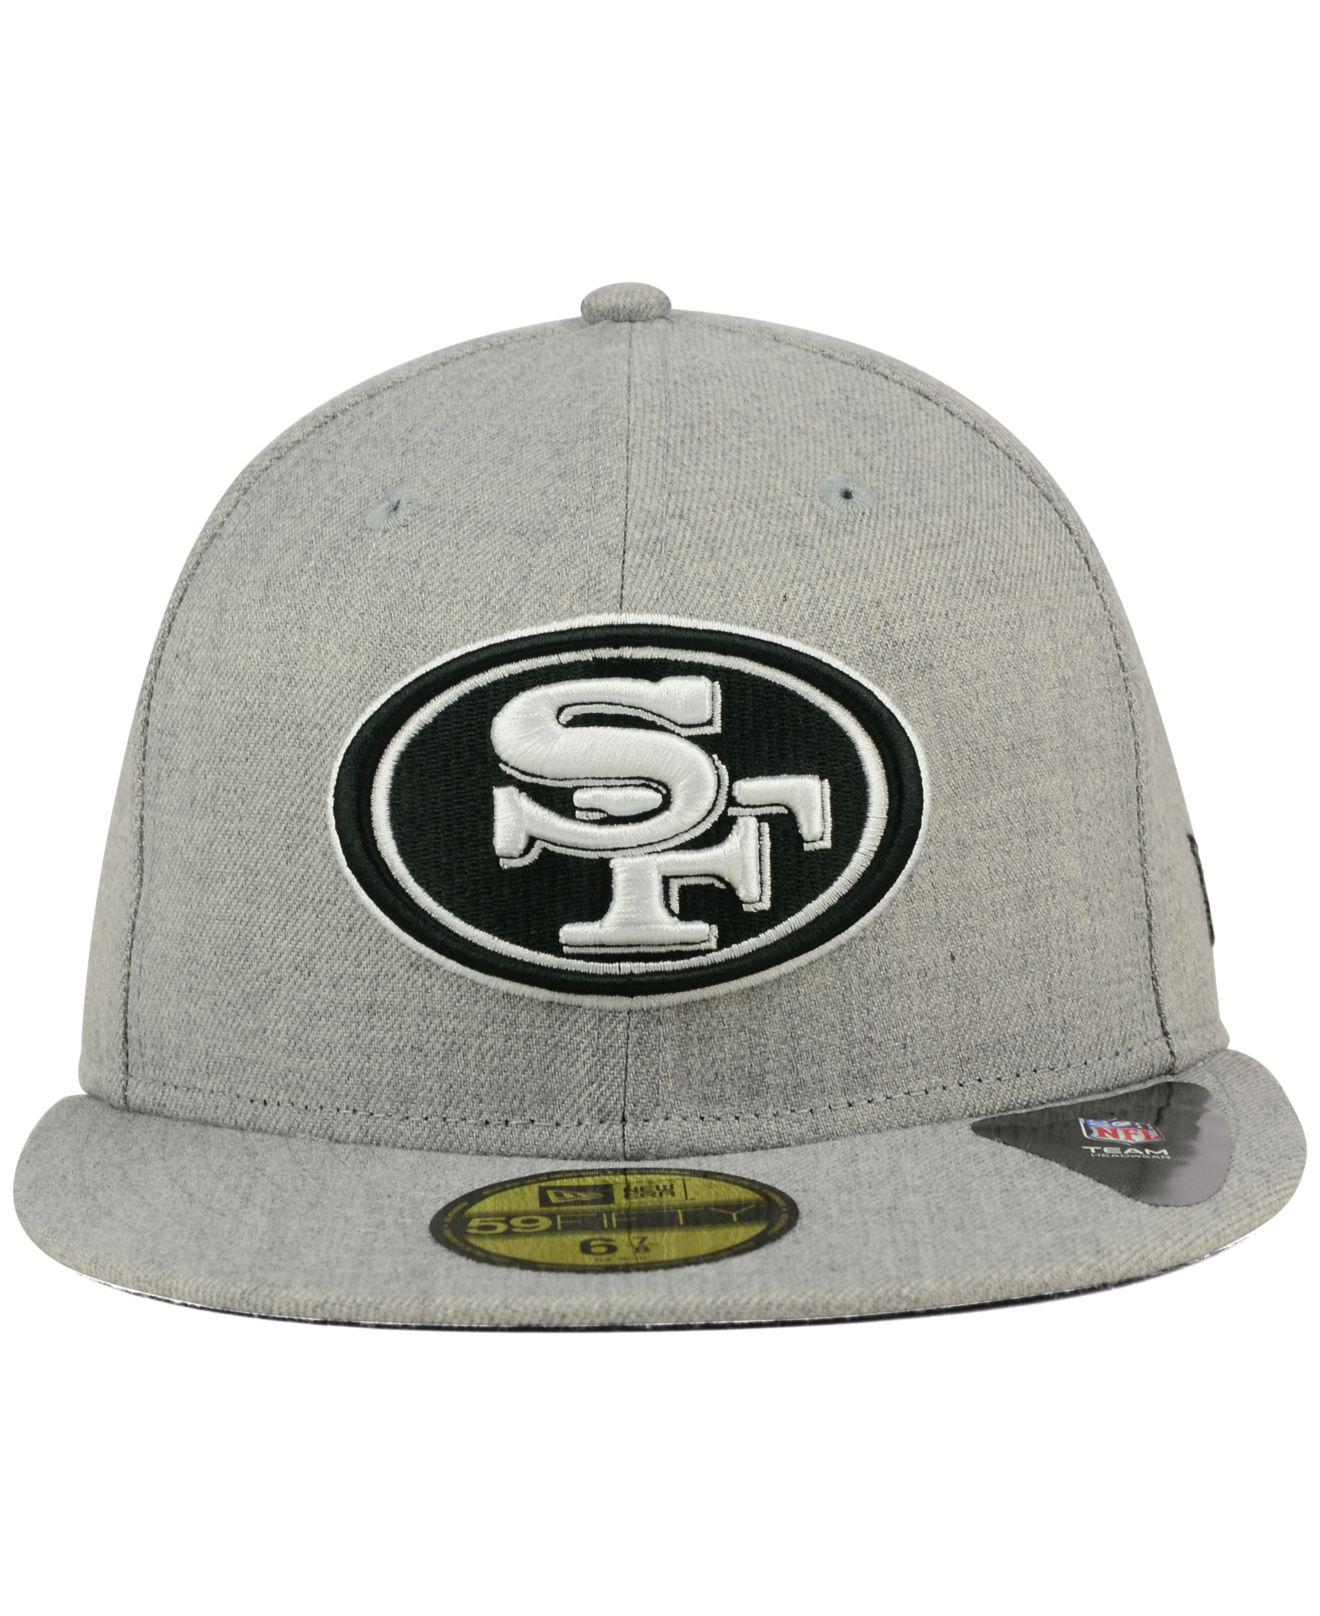 best service bdf7e a5881 KTZ San Francisco 49ers Heather Black White 59fifty Cap in Gray for Men -  Lyst